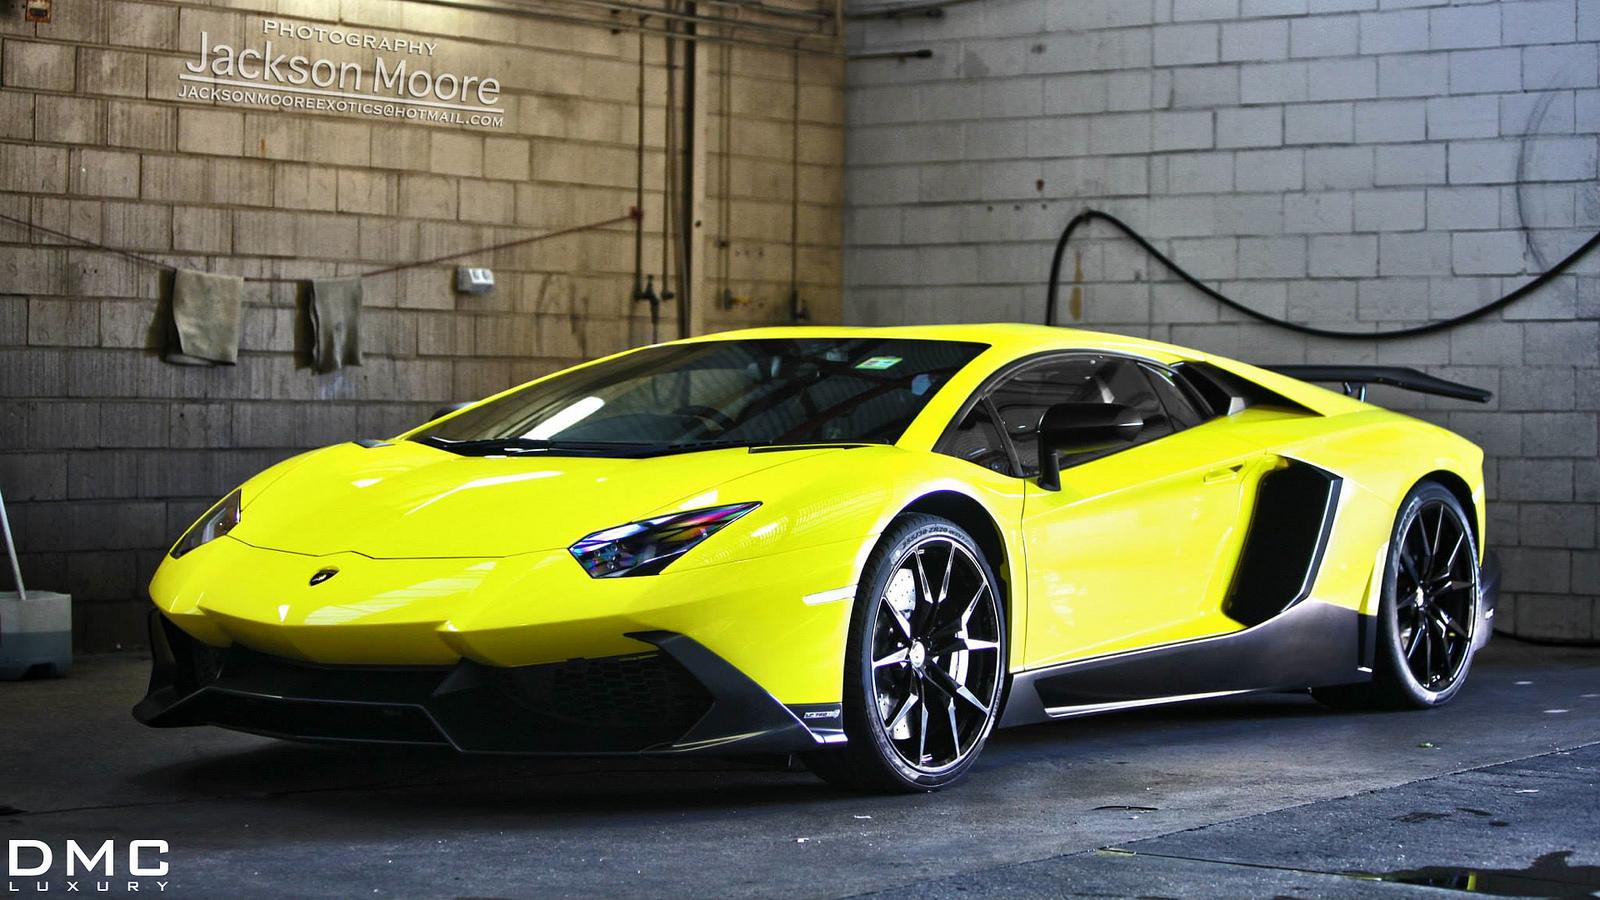 Lamborghini Aventador LP720-4 50 Anniversario with DMC Rear Wing - photo gallery